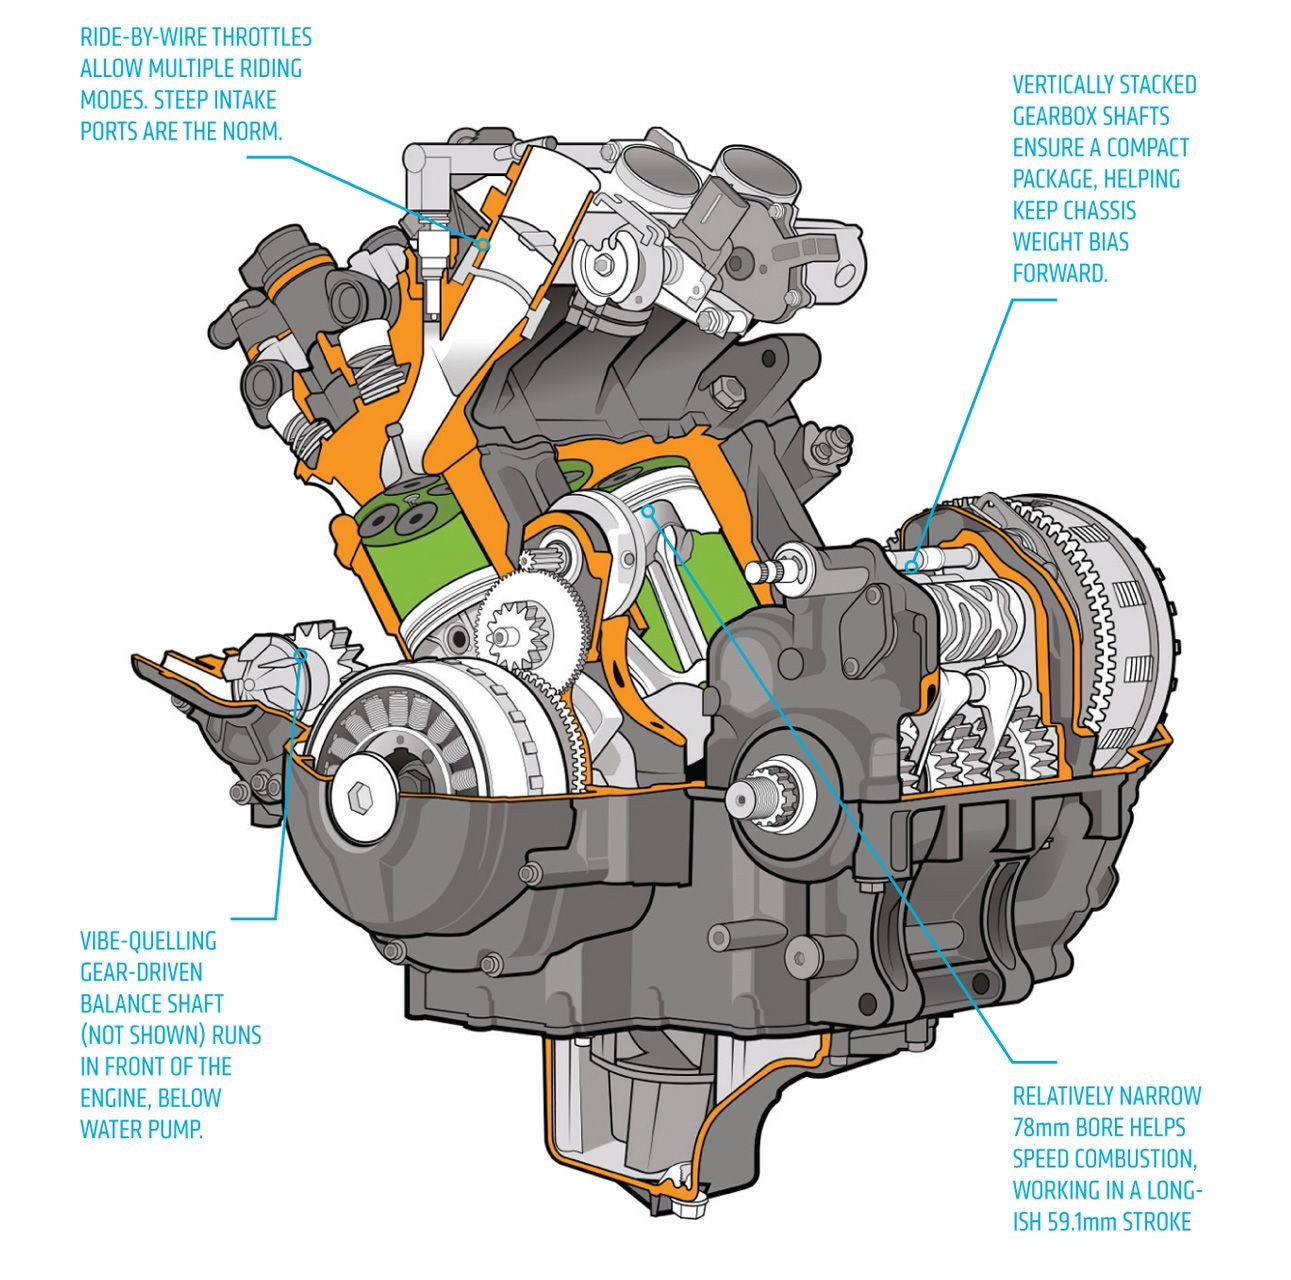 Yamaha 4 Cylinder Motorcycle Engine: CAD Engine Diagram - 2014 Yamaha FZ-09